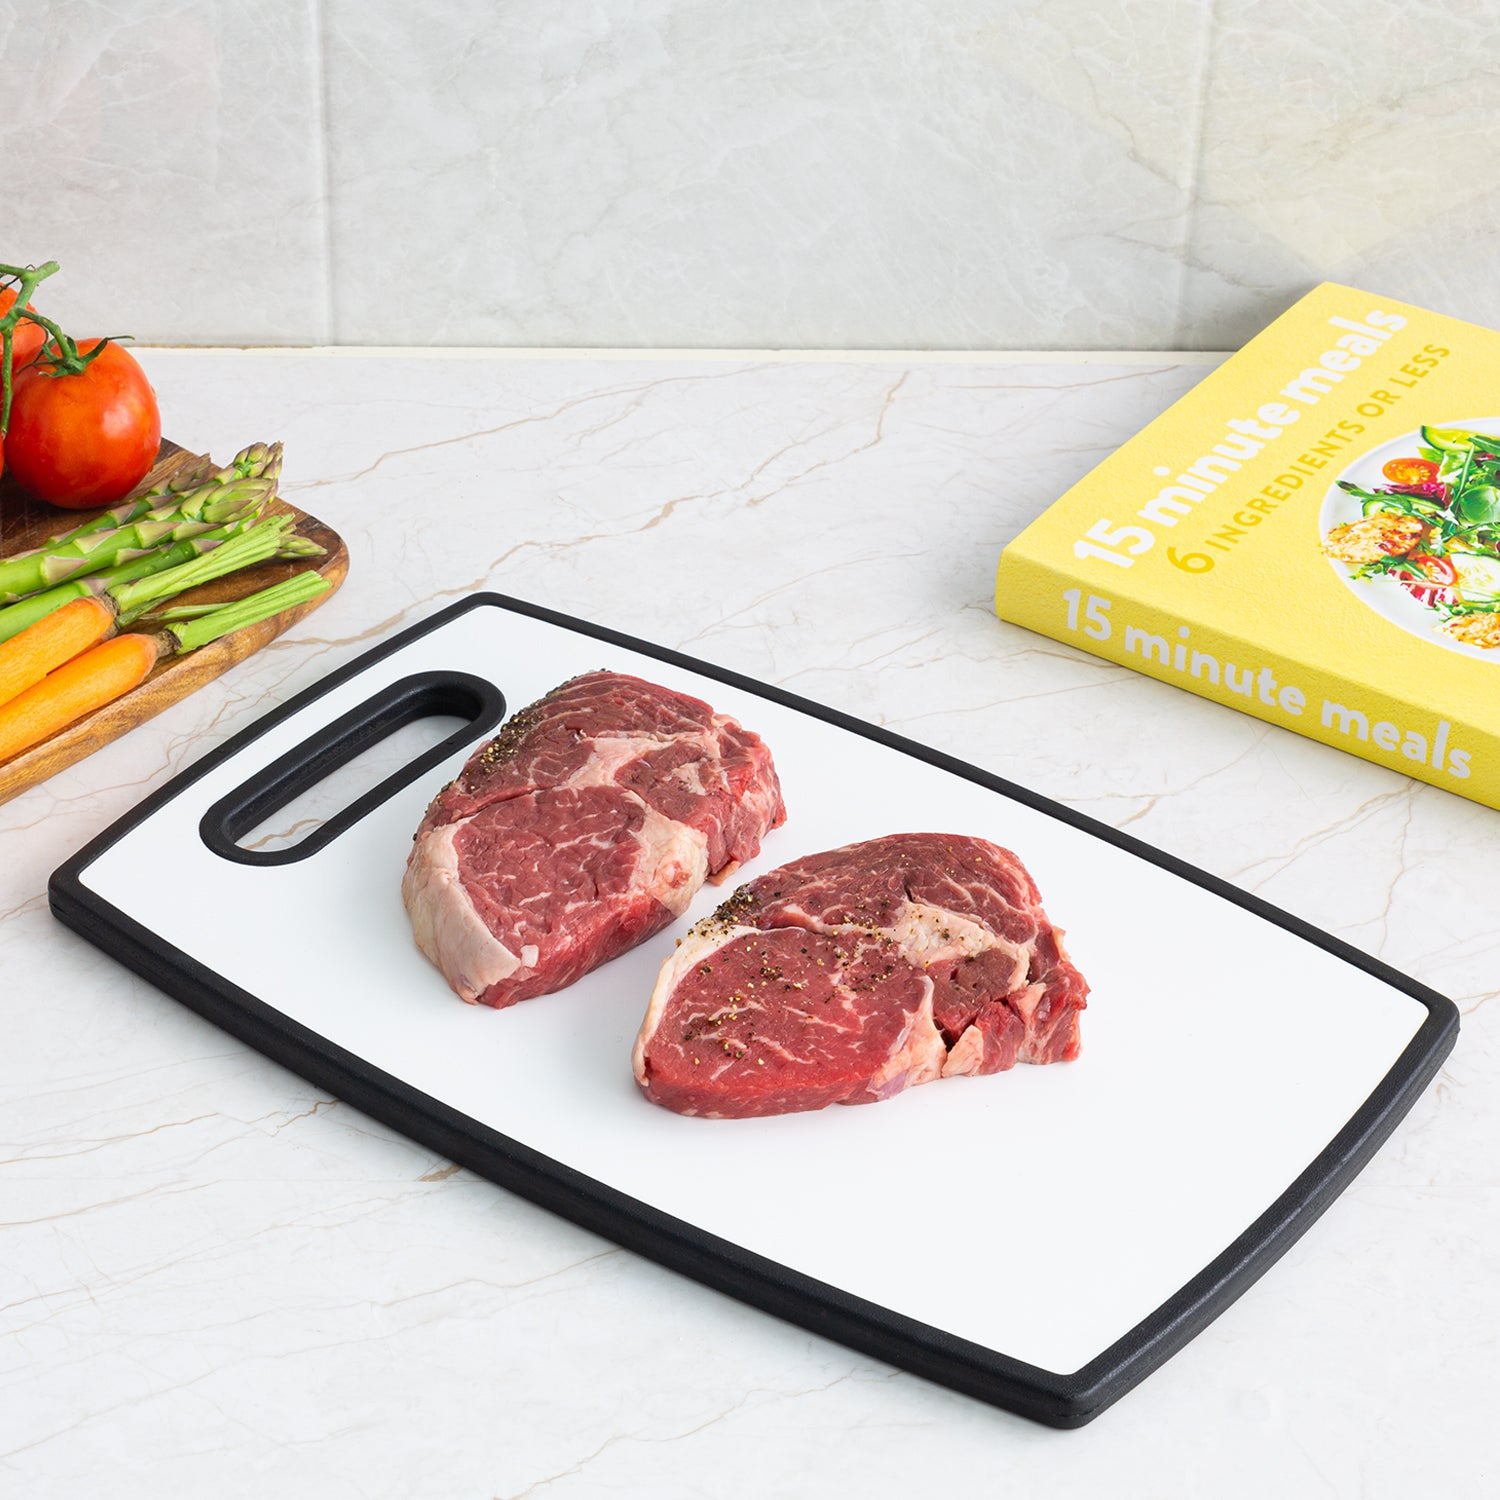 No More Cross Contamination With The Double Sided Chopping Board - 3 Sizes Available!